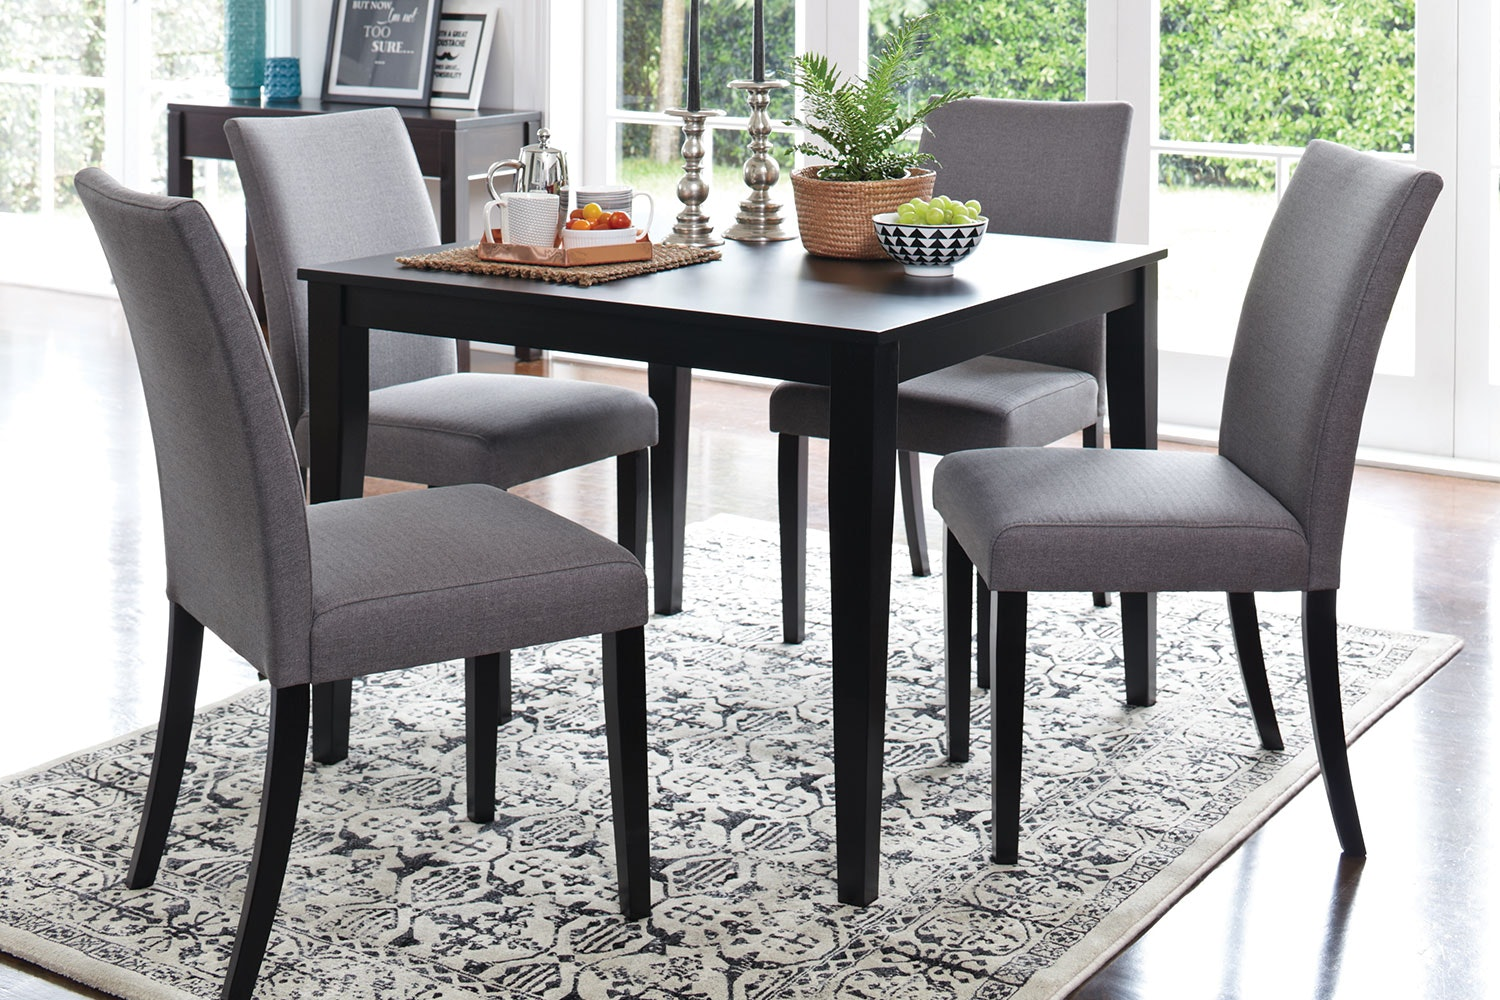 Monza 5 Piece Dining Suite By Paulack Furniture ...